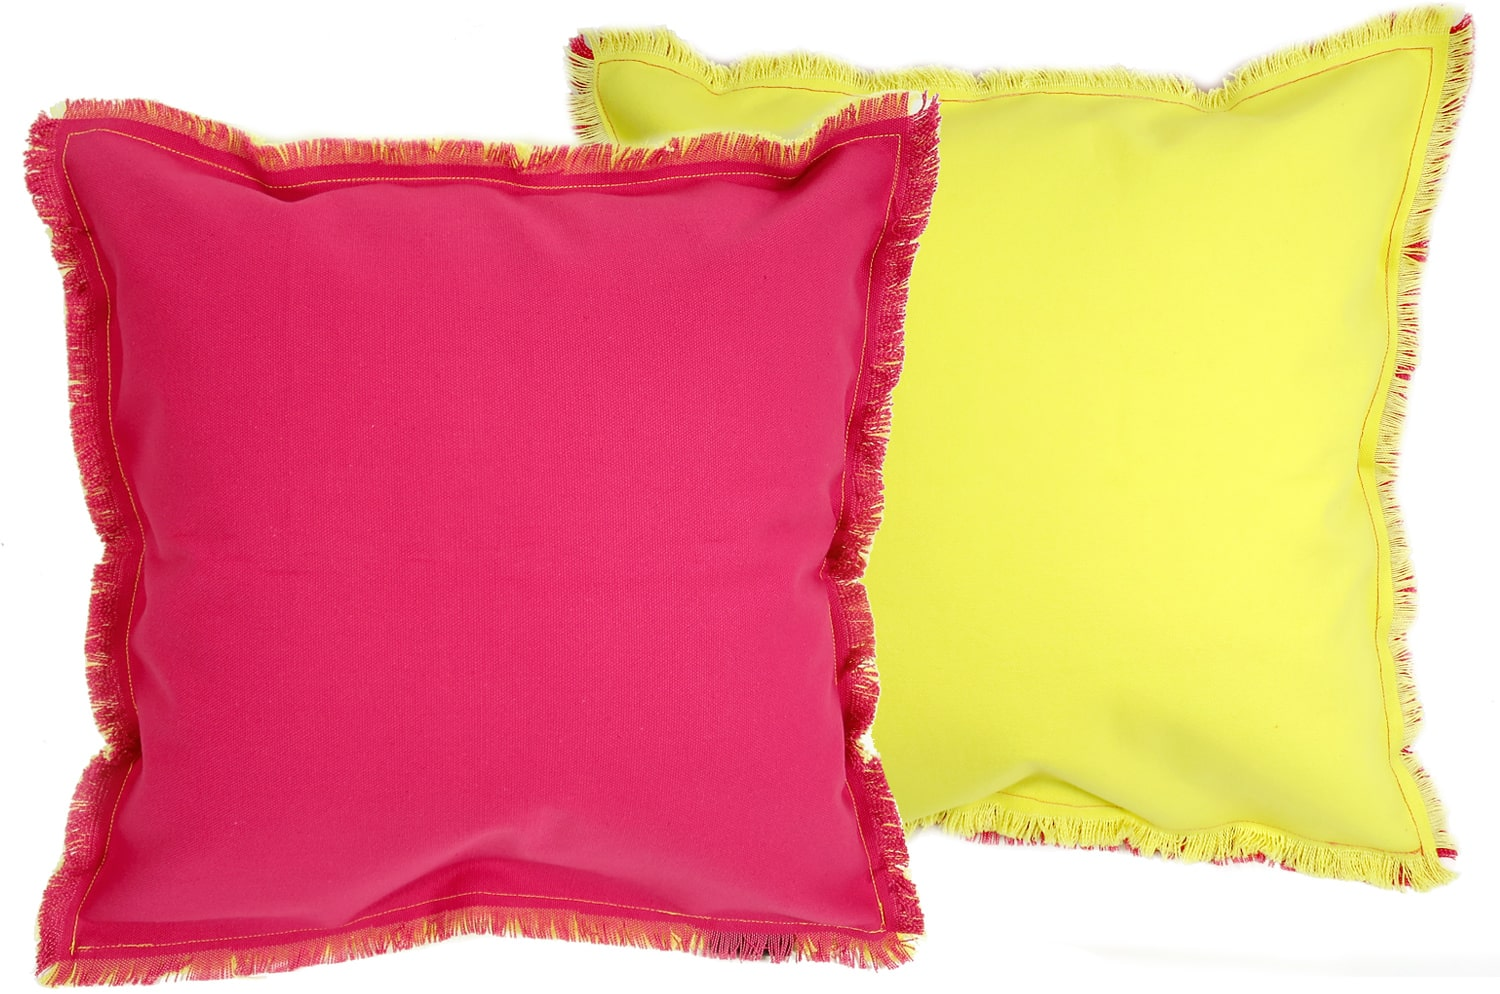 waterproof-pinkyellow40